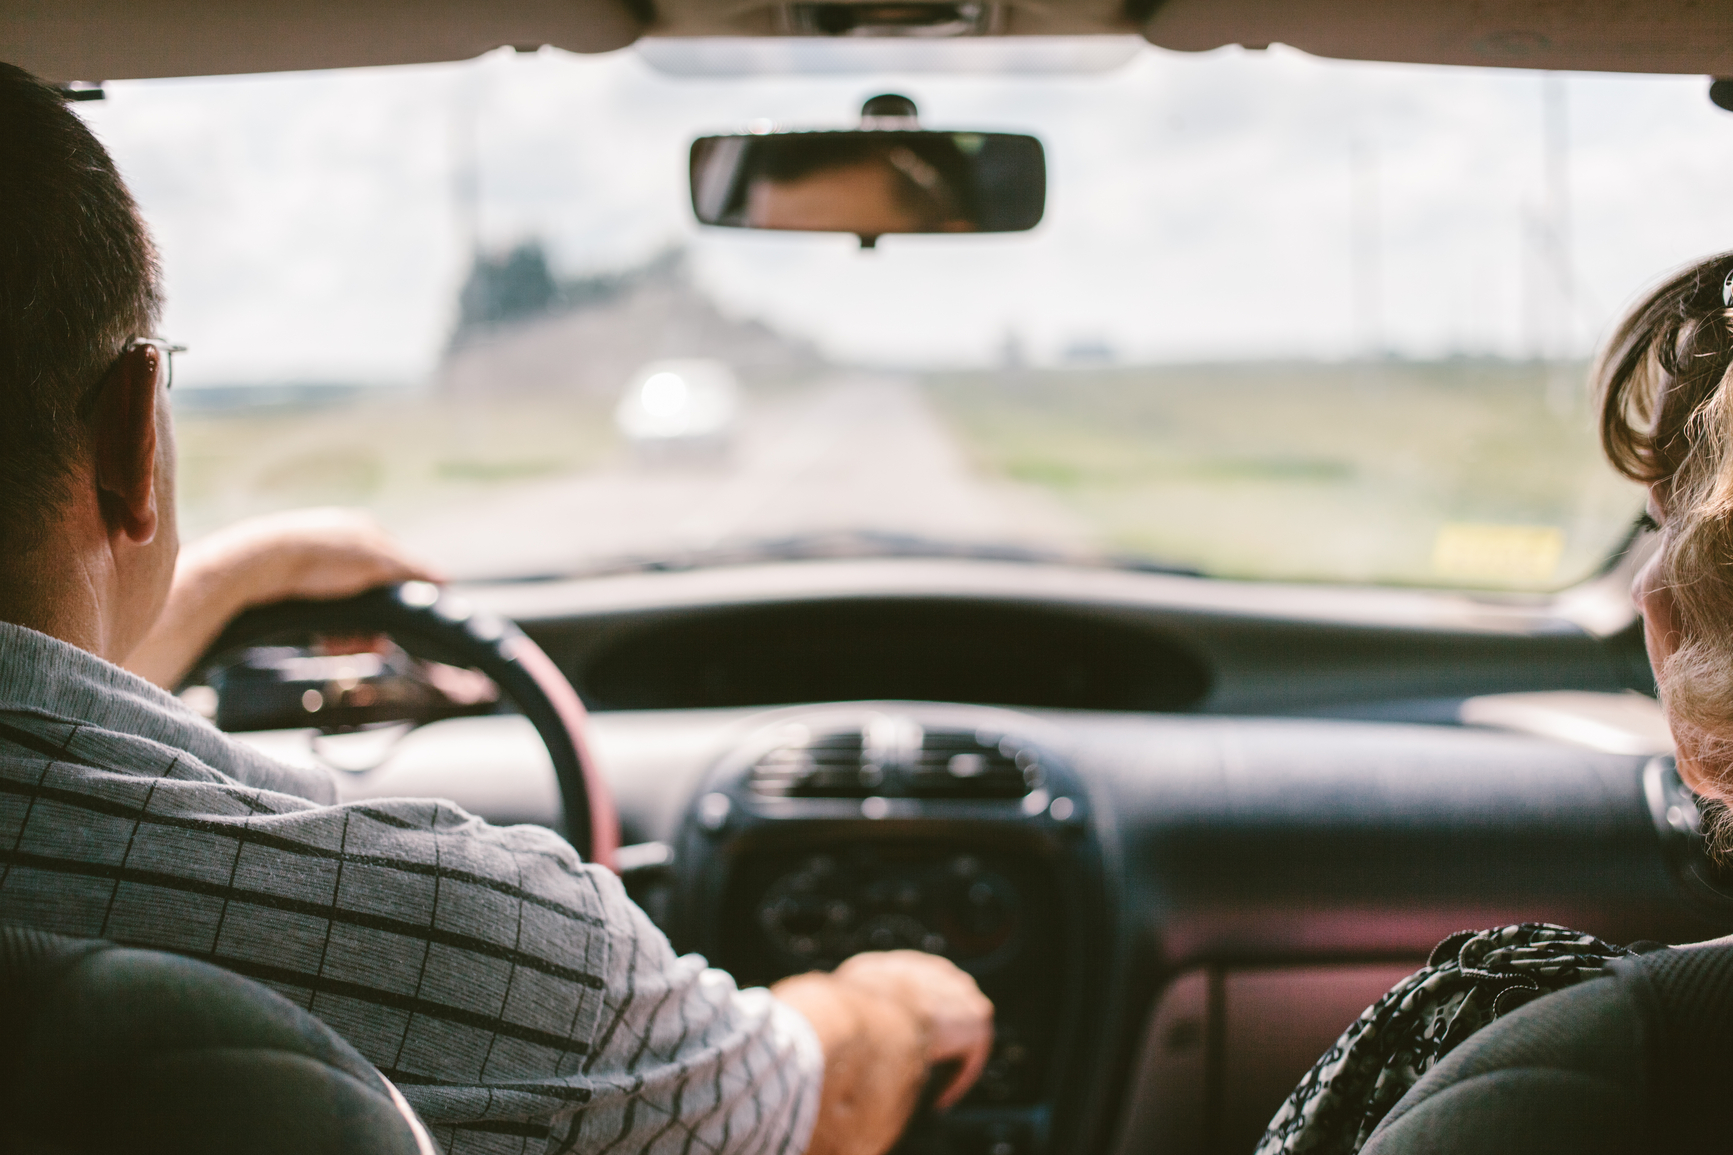 9 New Rideshare Apps to Try - NerdWallet